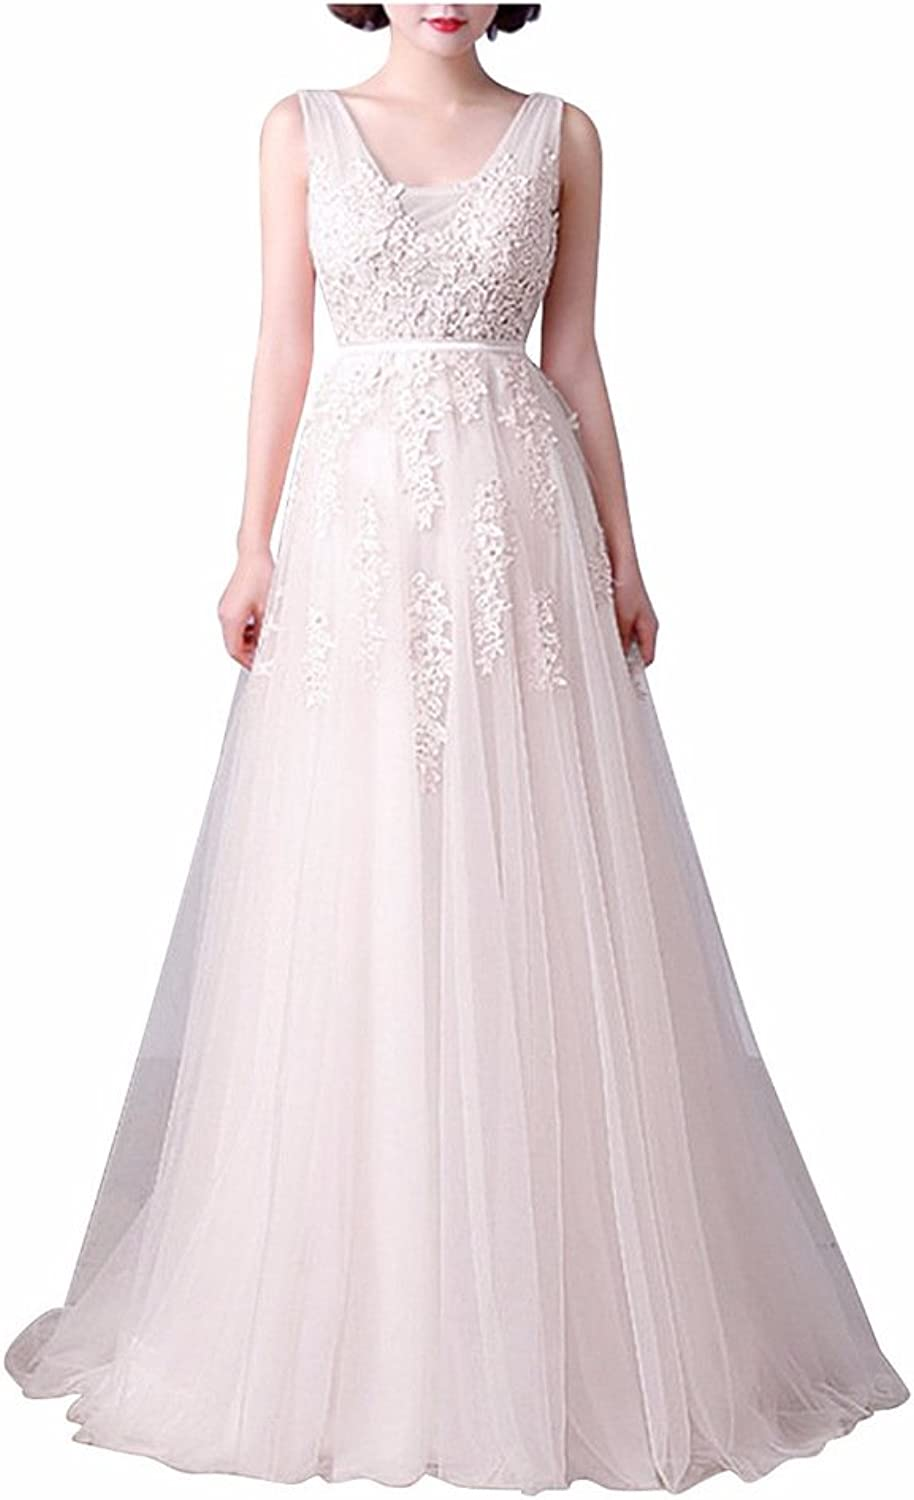 Rieshaneea Womens Long Bridesmaid Dresses Lace Tulle Evening Prom Gown